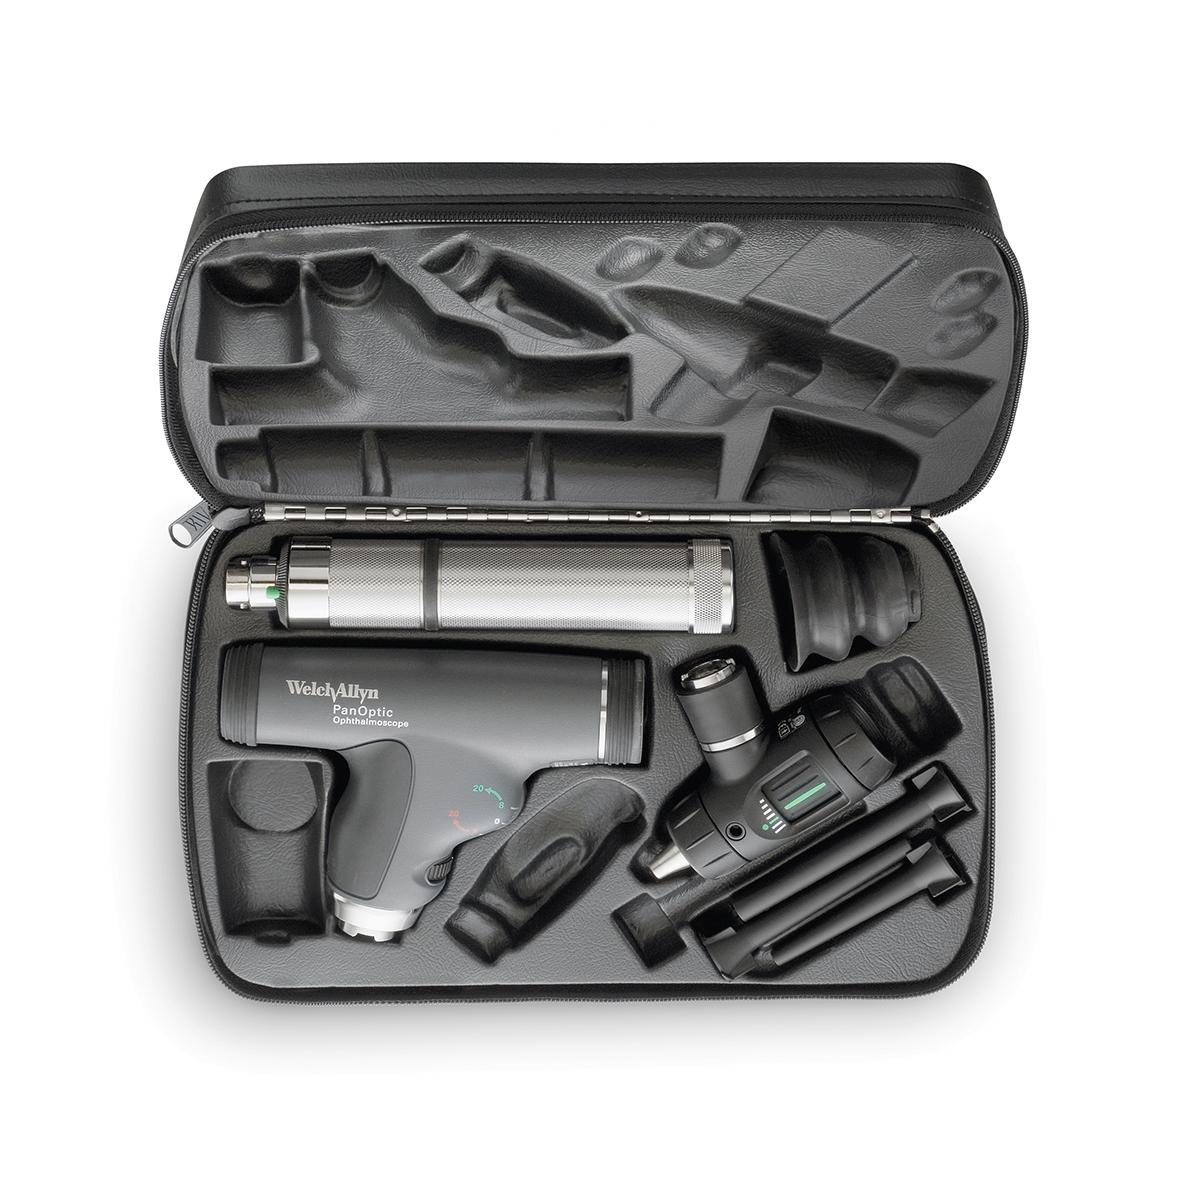 Veterinary Diagnostic Set, overhead view of instruments in open case